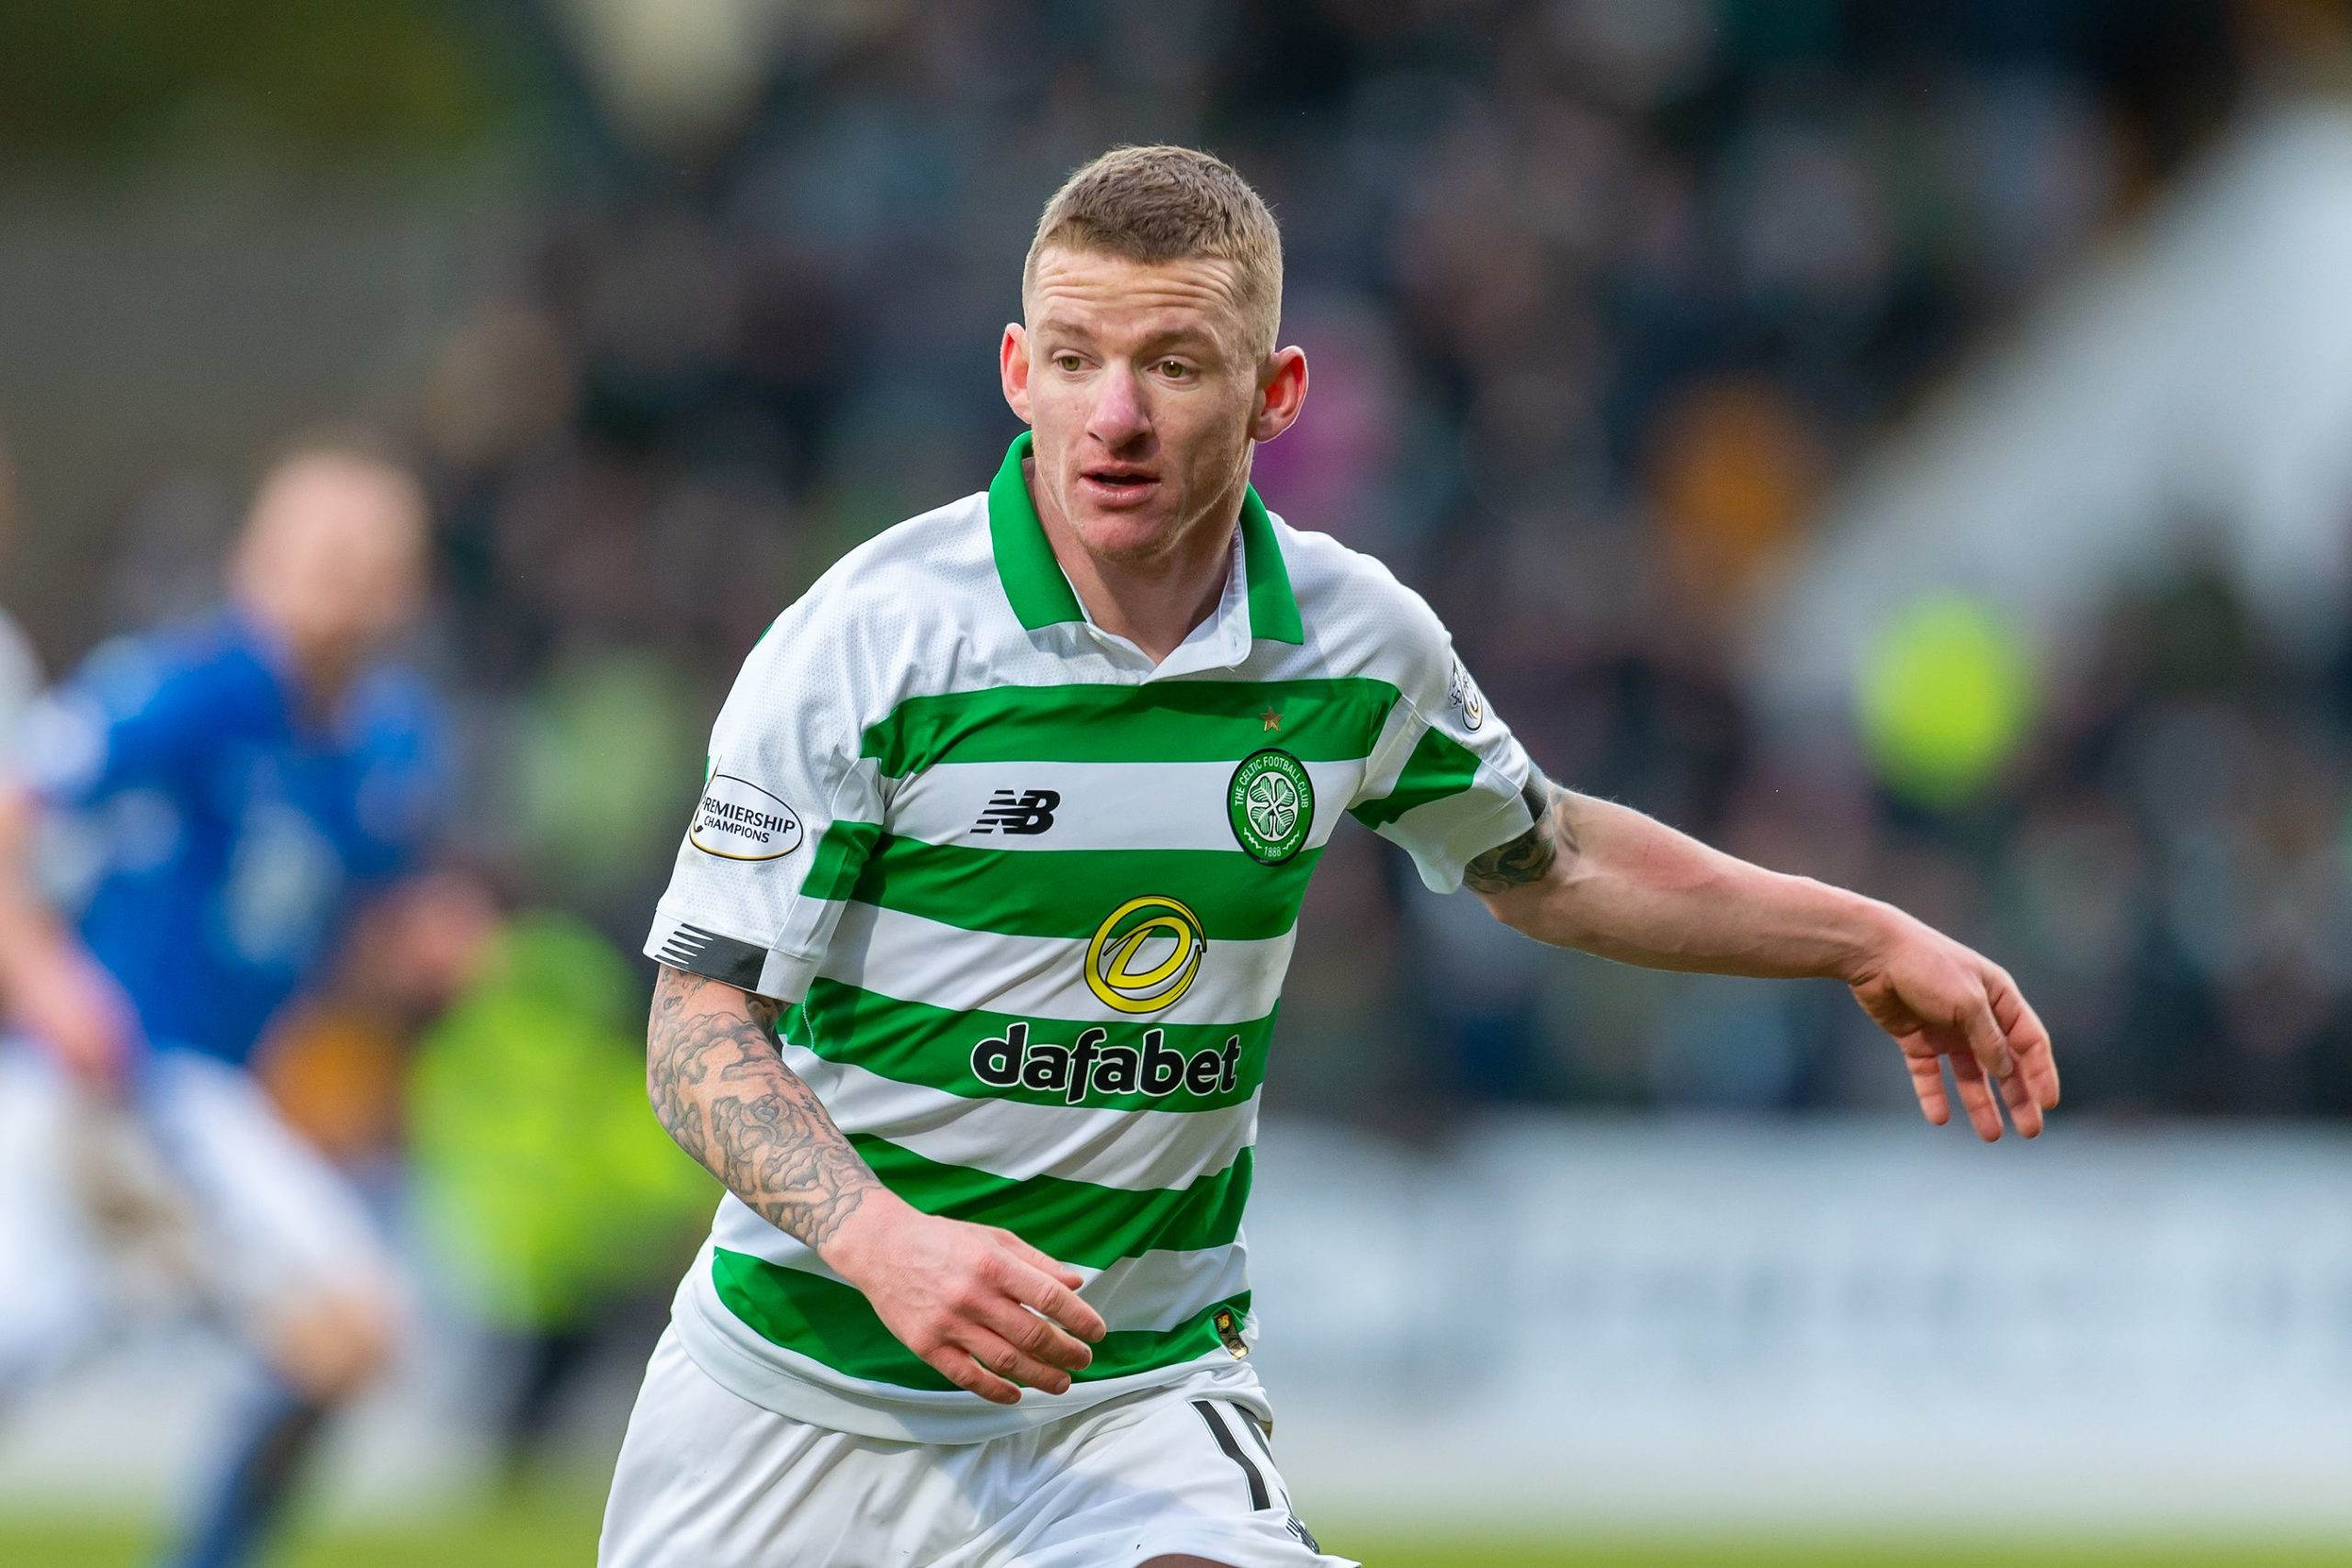 Jonny Hayes played left-back for Celtic, but McInnes has backed him to perform in any role.